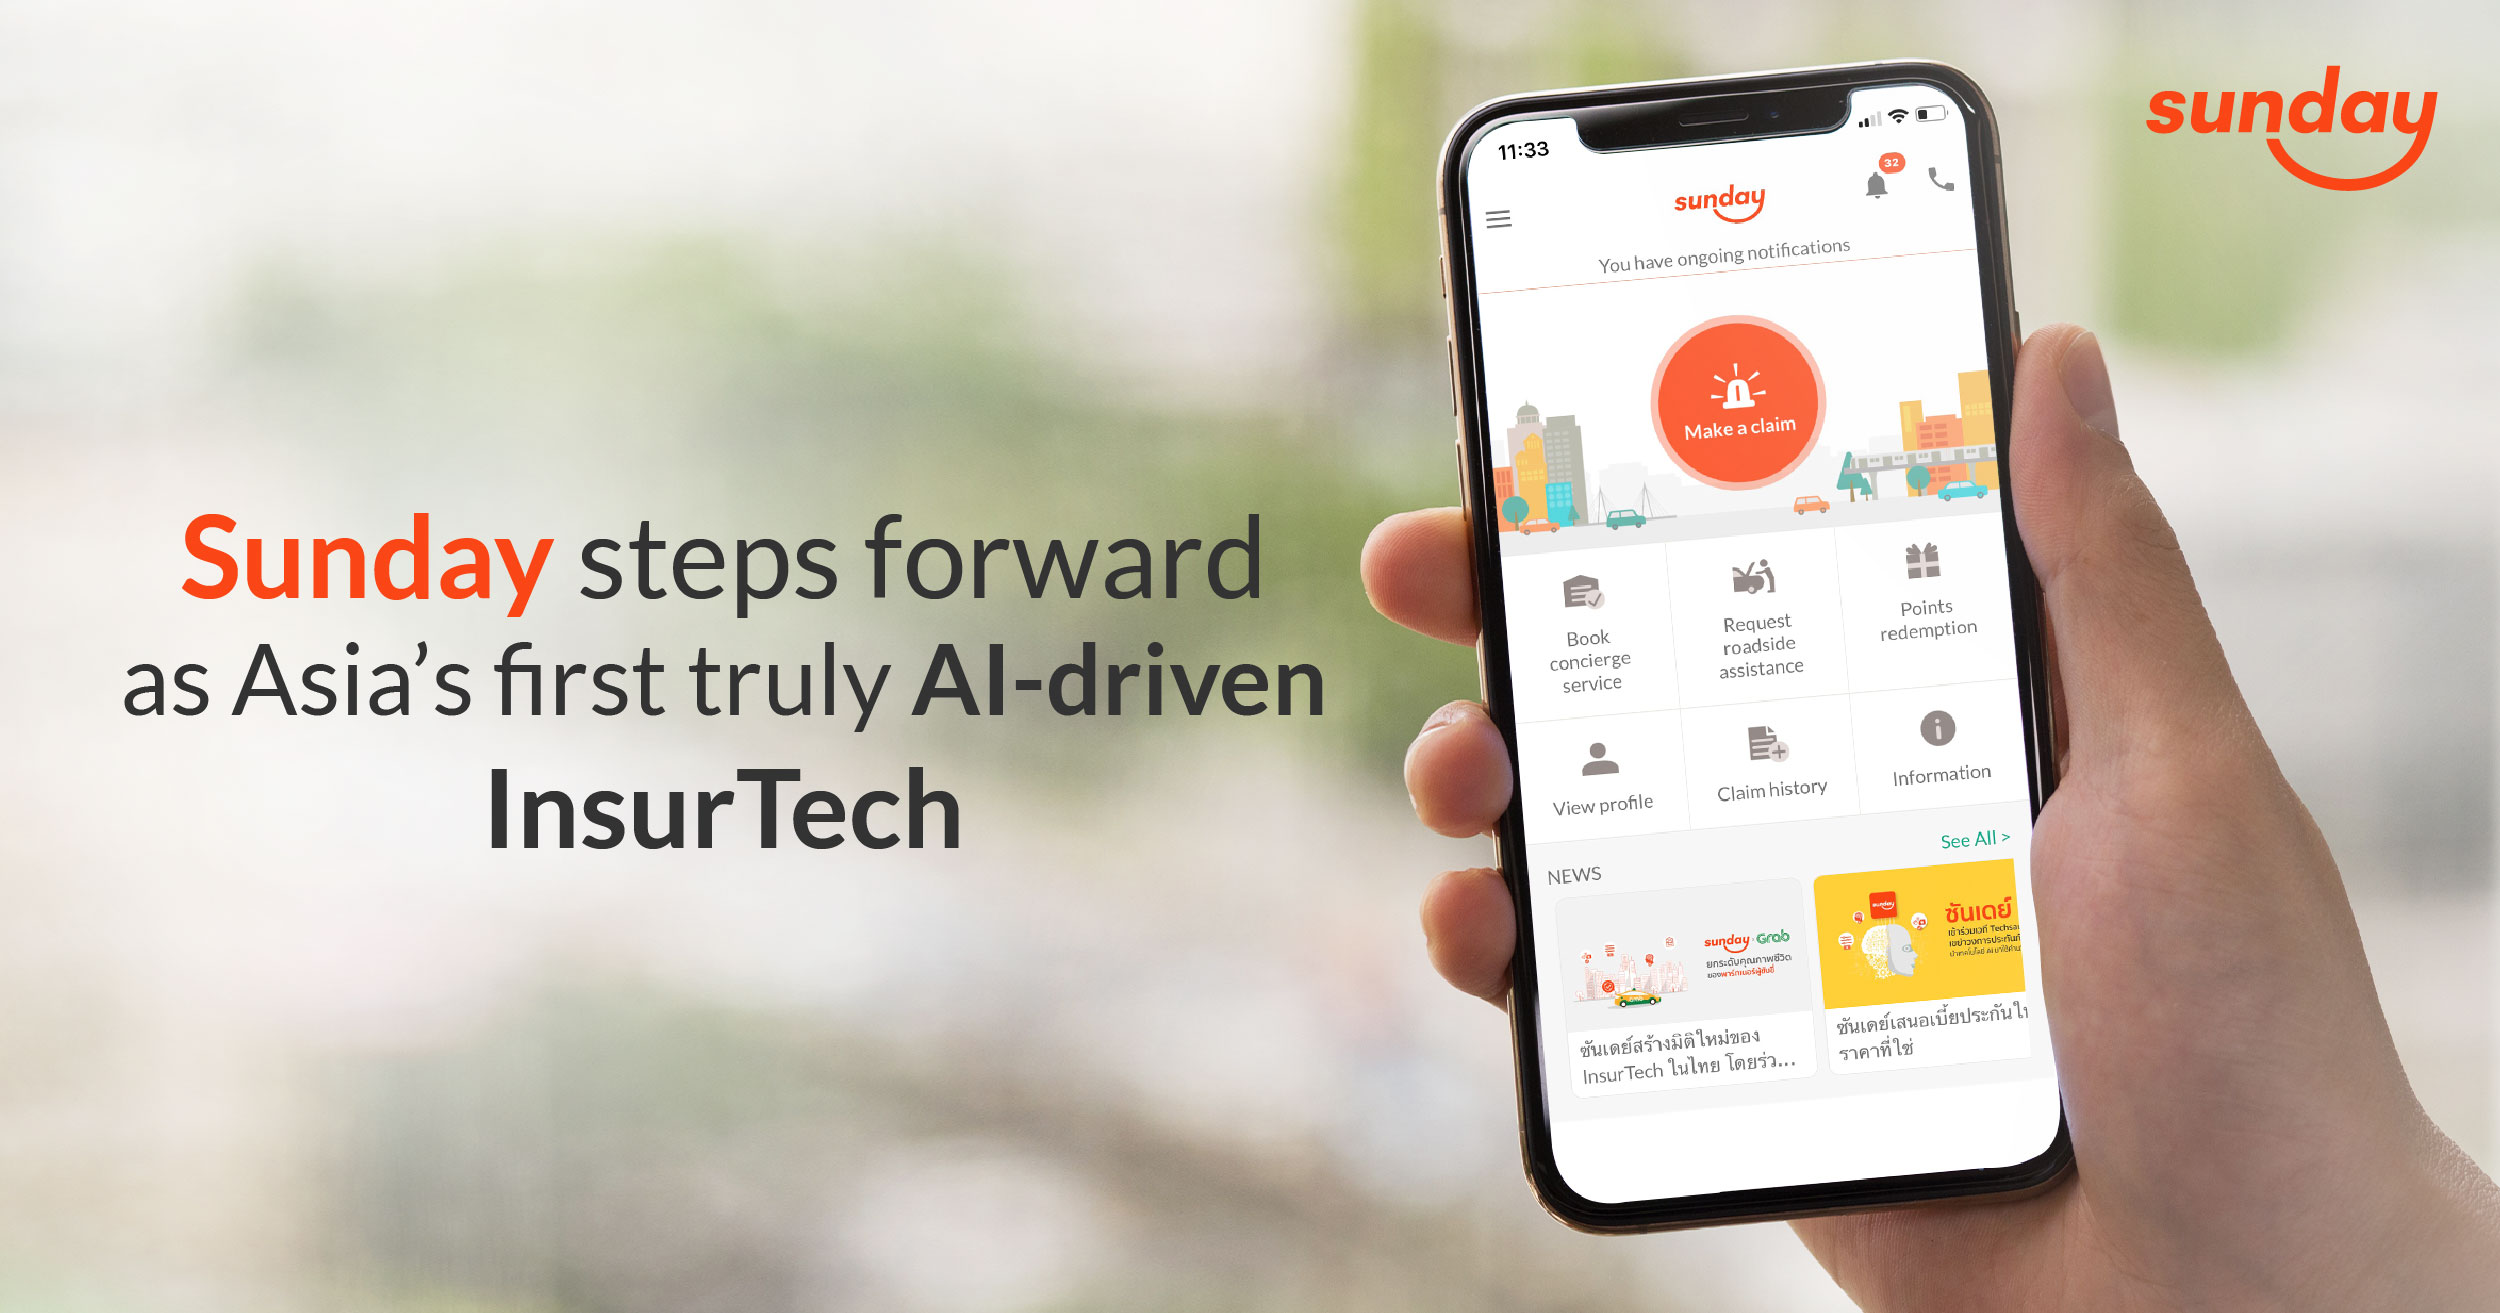 Sunday steps forward as Asia's first truly AI-driven InsurTech